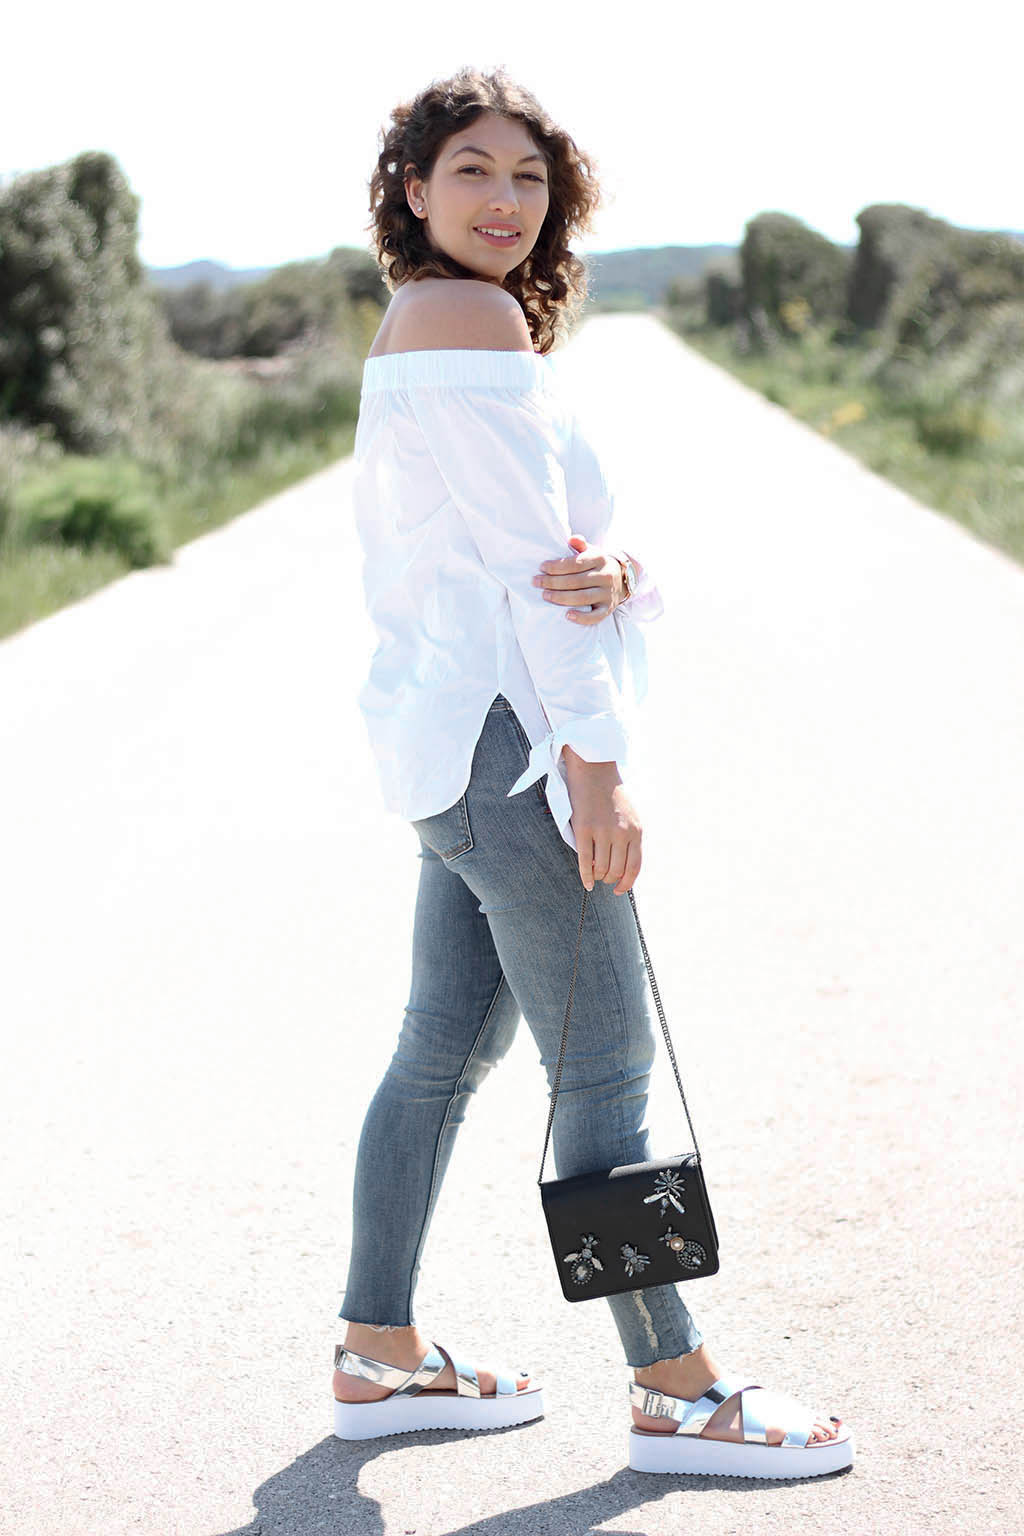 fashion-blog-mode-style-summer-mood-look-tenue-avis-conseil-white